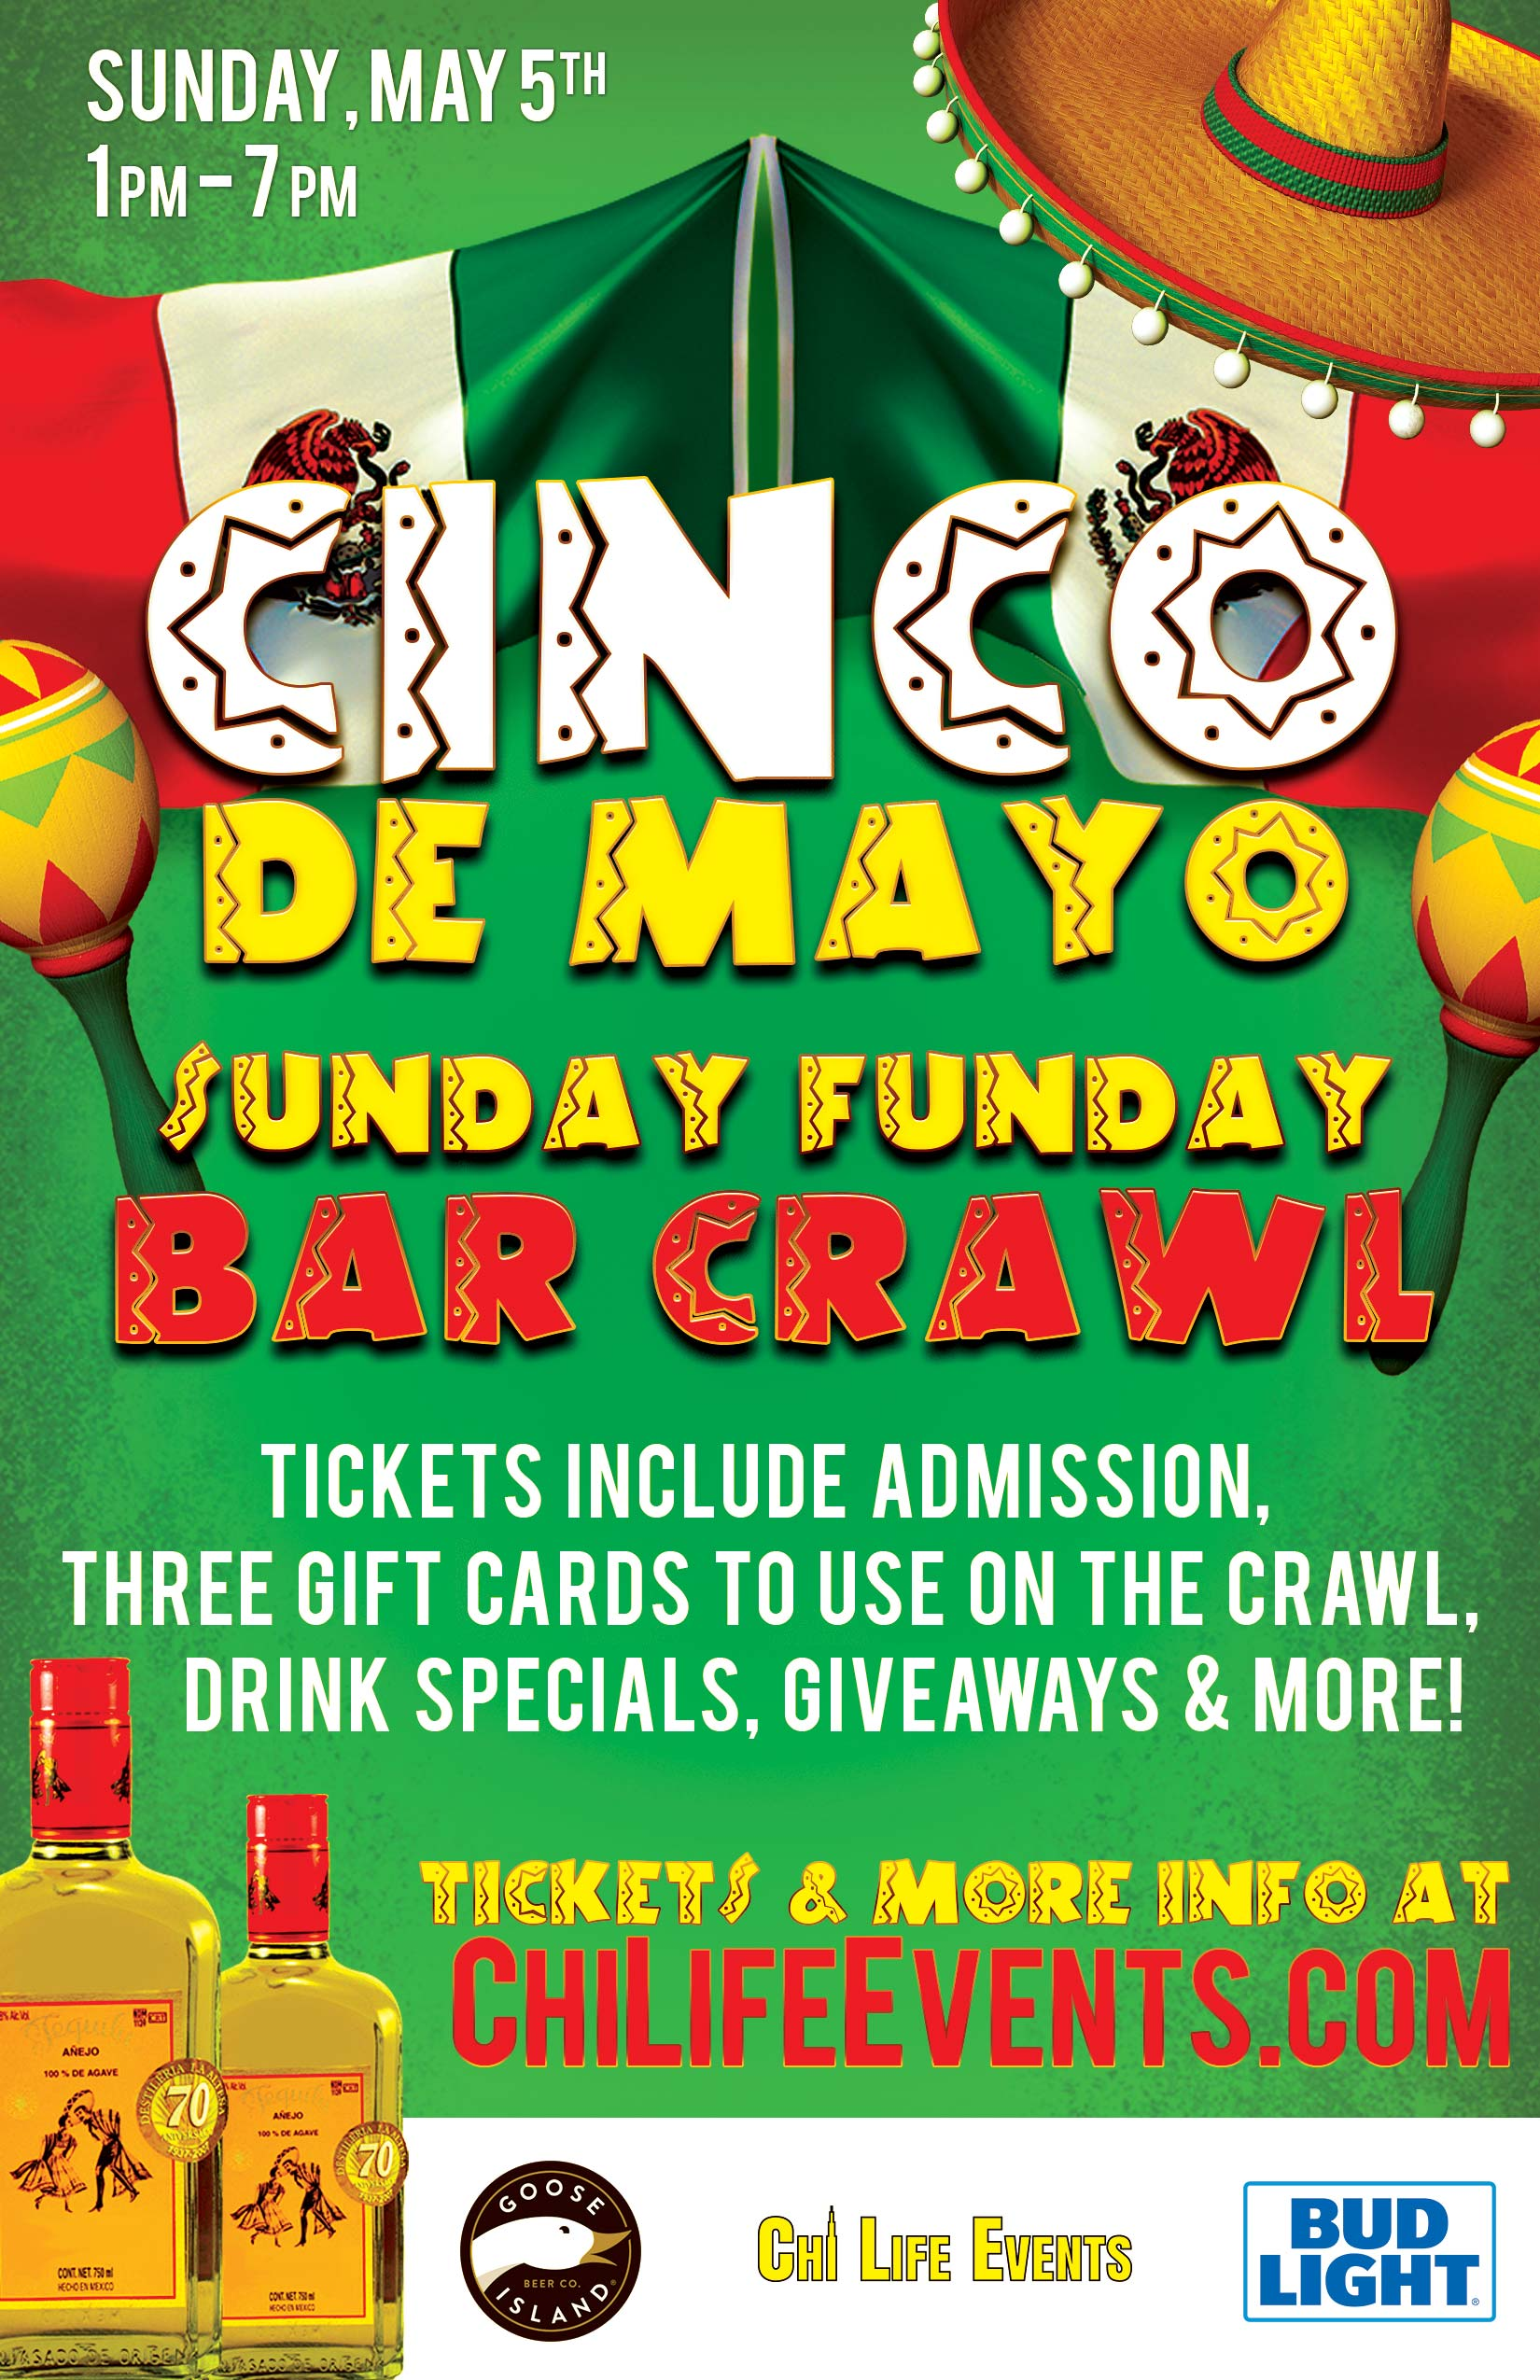 Cinco de Mayo Sunday Funday Bar Crawl Party - Tickets include Admission, Three Gift Cards to Use on the Crawl, Drink Specials, Giveaways & MORE!